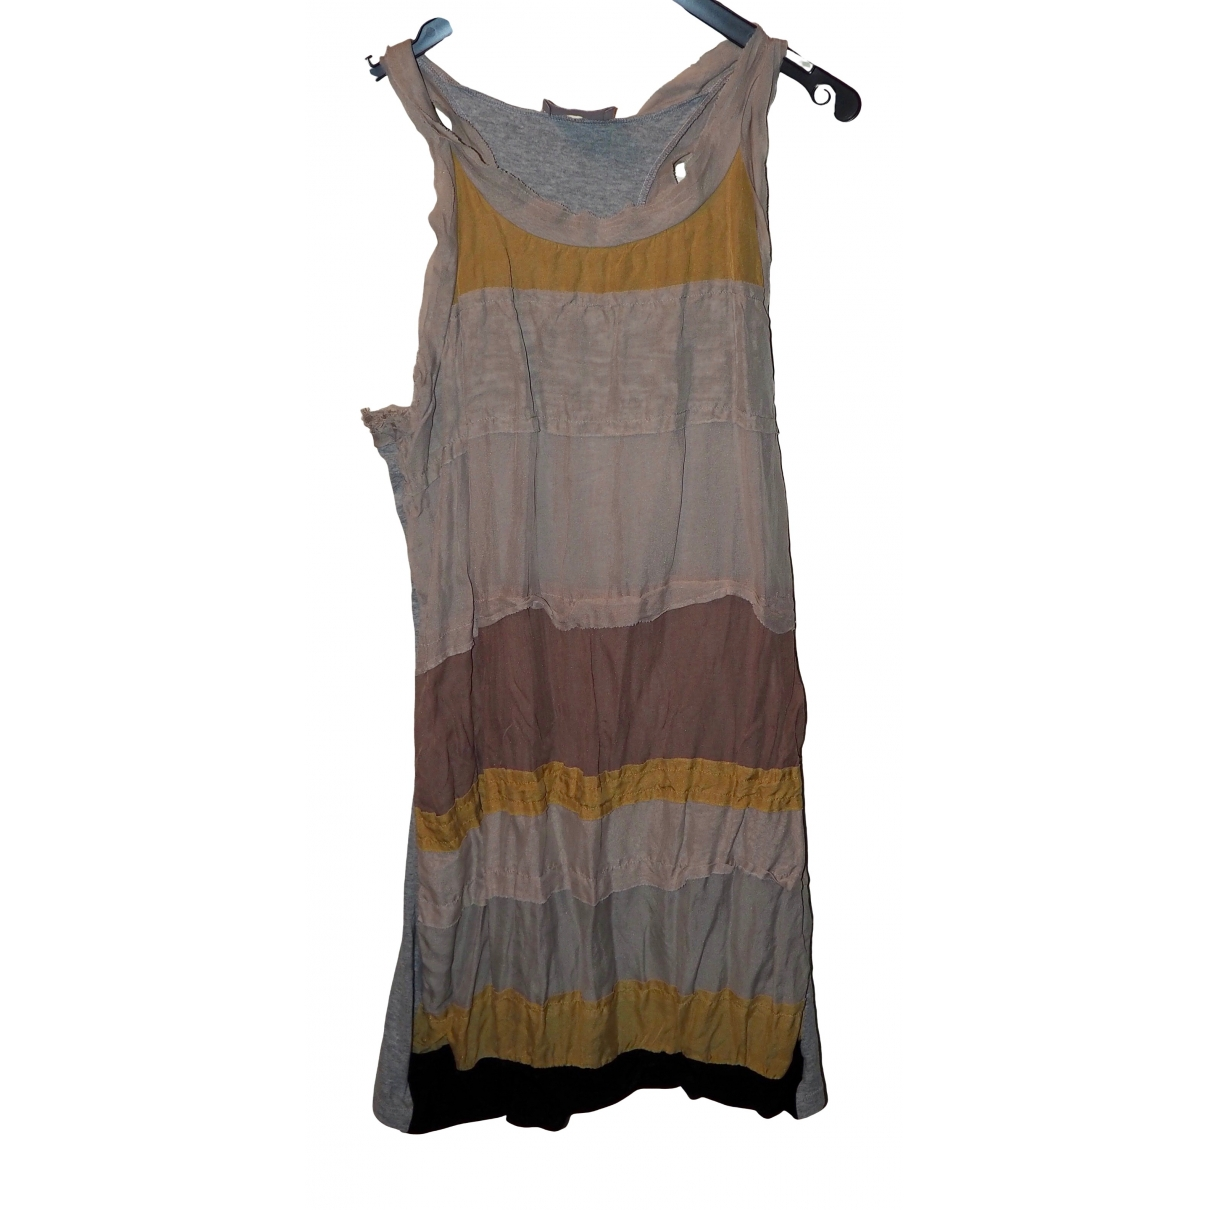 Lanvin \N Multicolour Cotton dress for Women L International